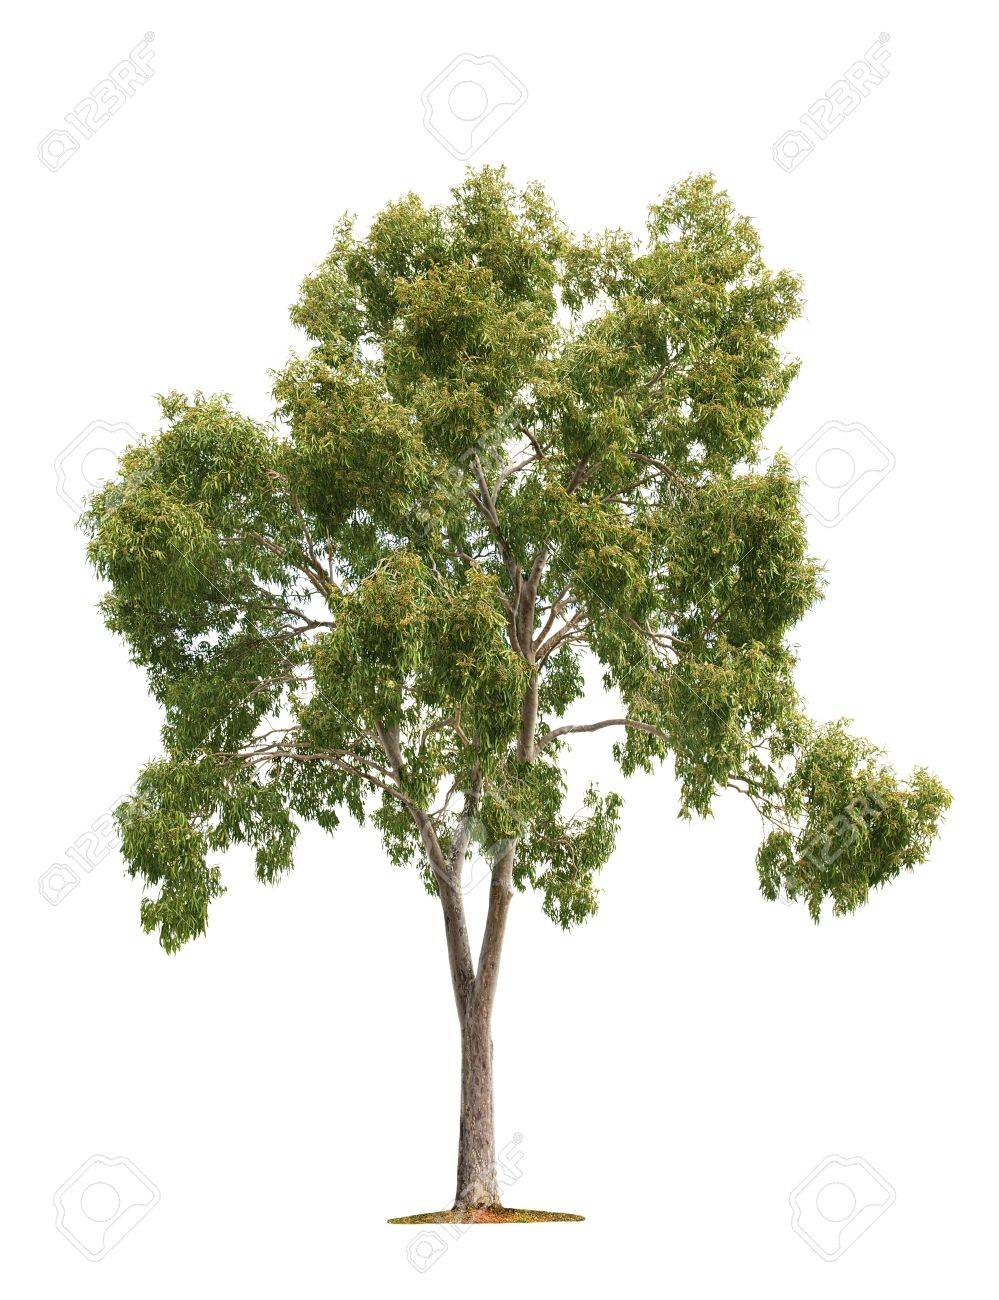 Green beautiful and tall tree isolated on white background Stock Photo - 13880585